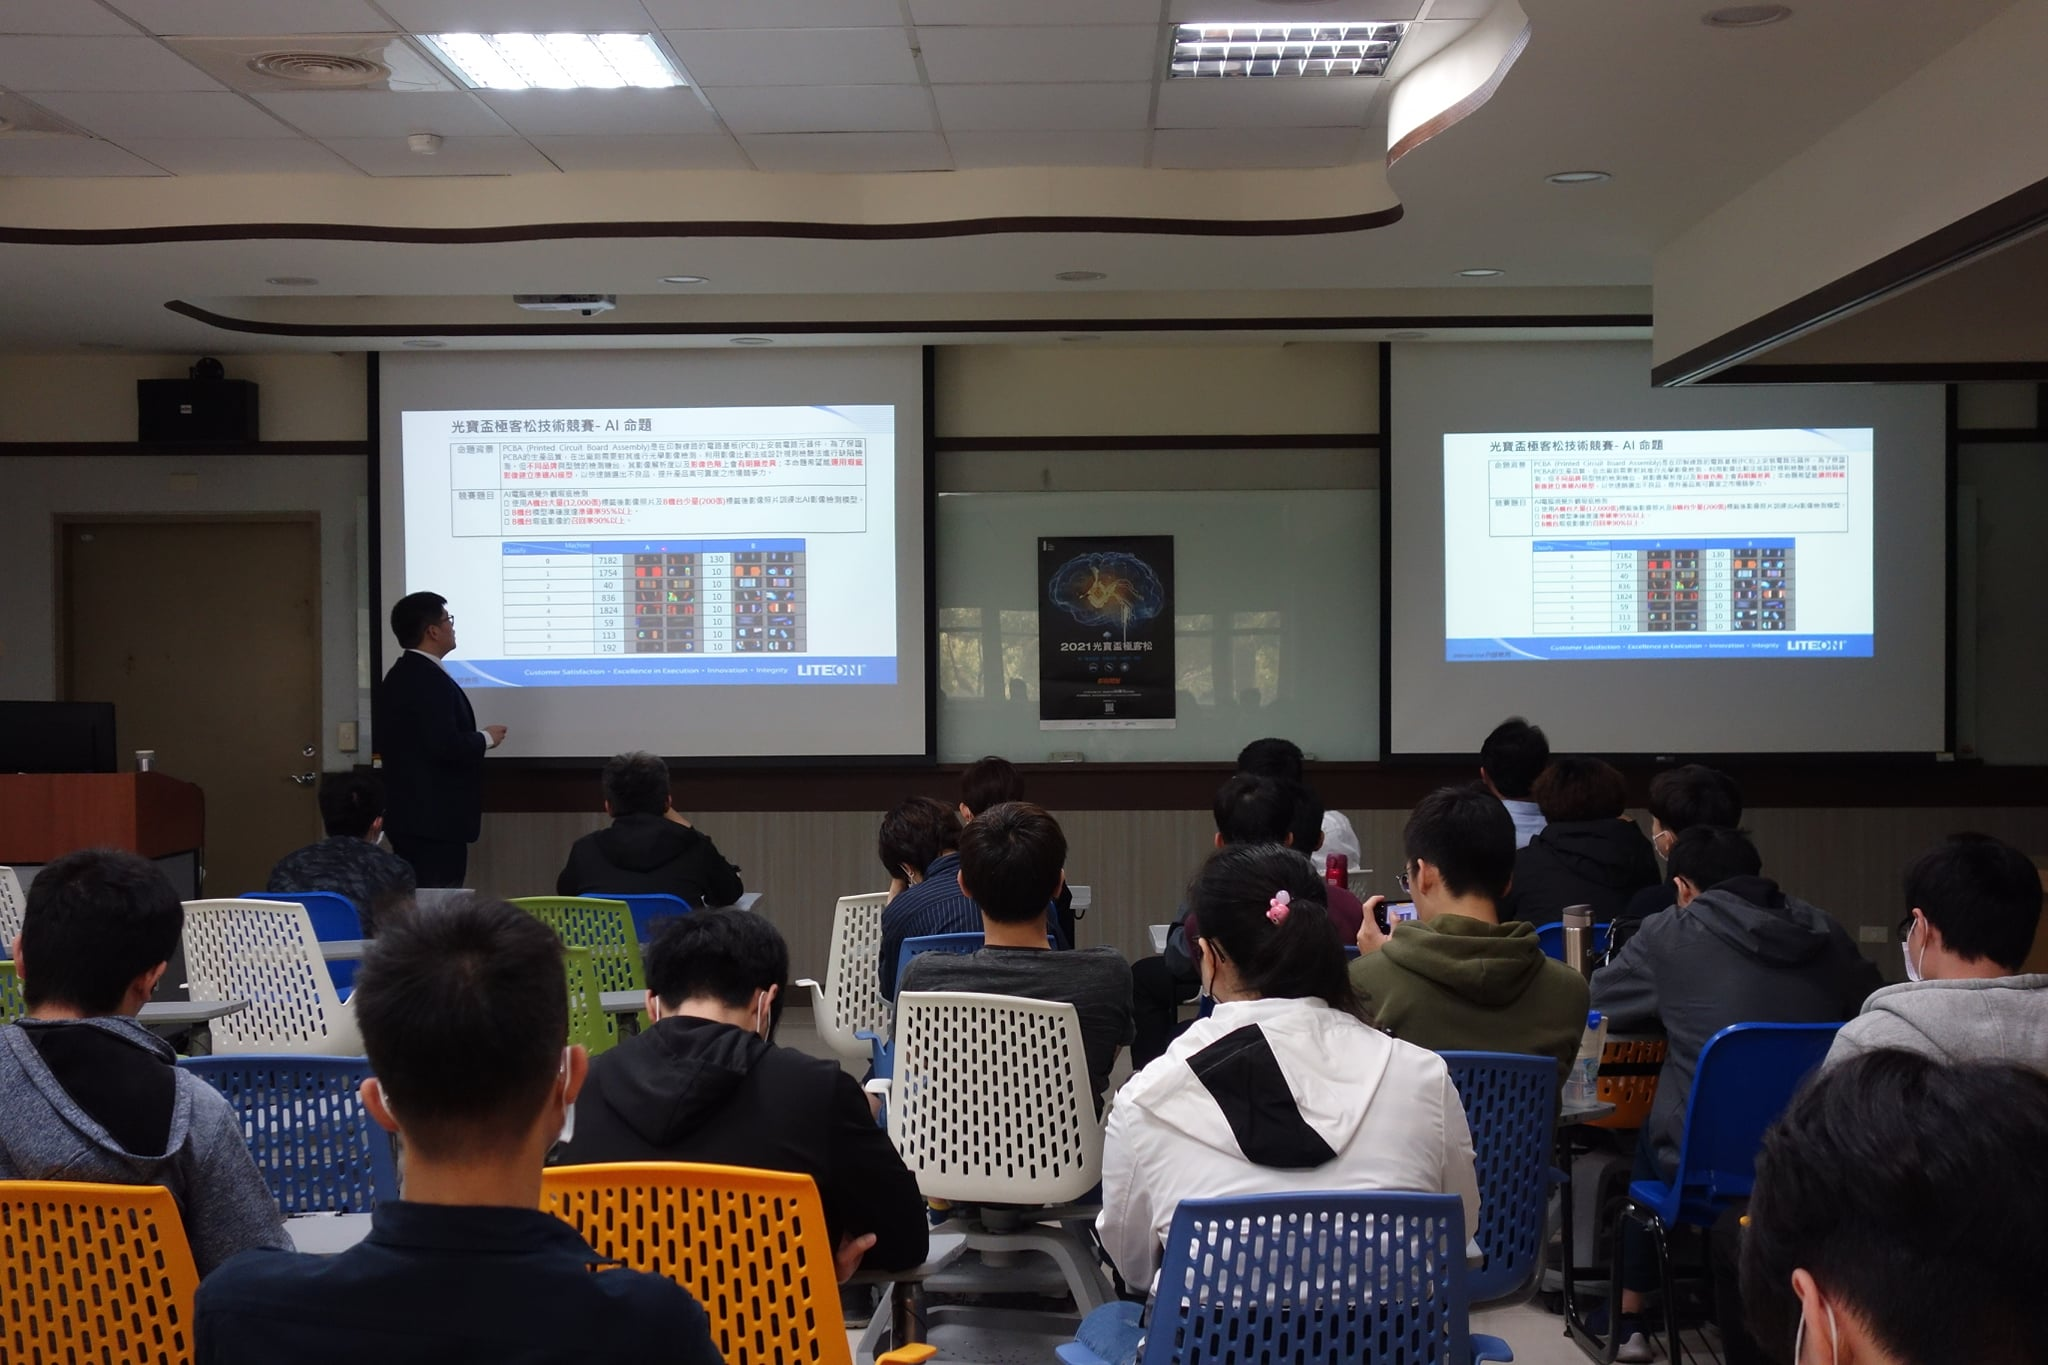 【The Liteonaward Geekathon Briefing Meeting Yuntech Session】02